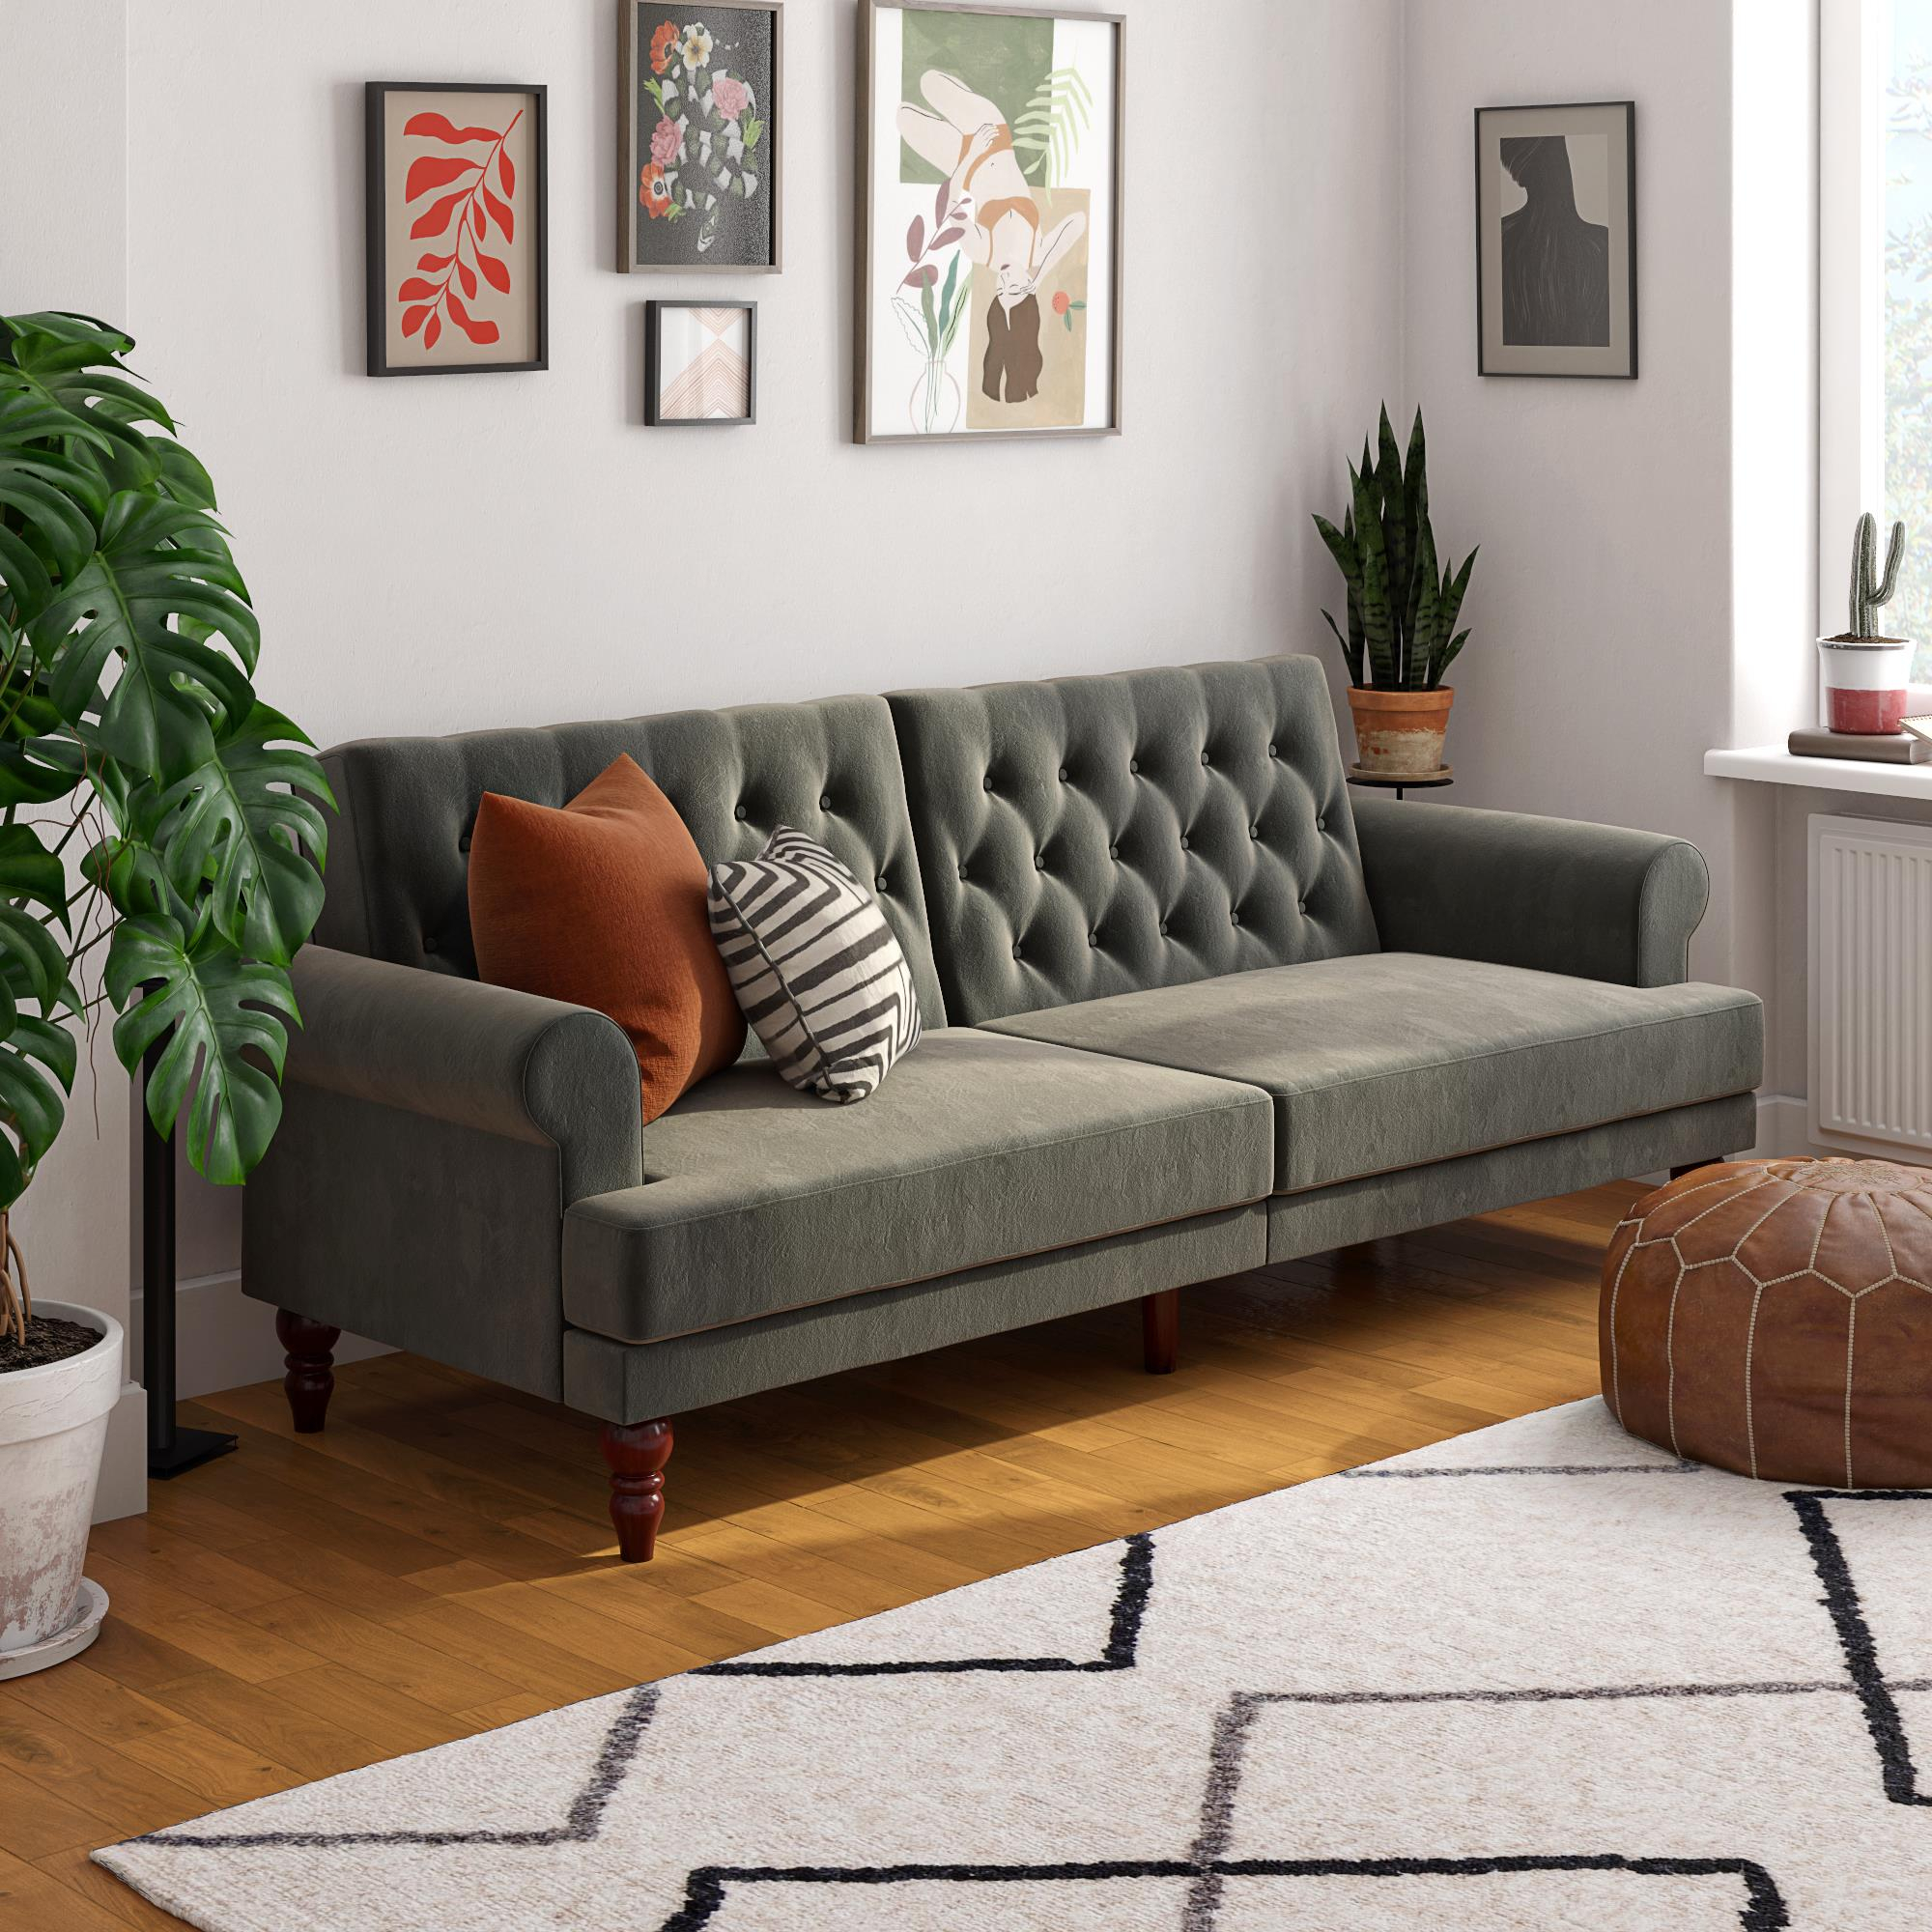 Novogratz Upholstered Cassidy Futon, Convertible Sofa Bed Within Convertible Sectional Sofas (View 5 of 15)